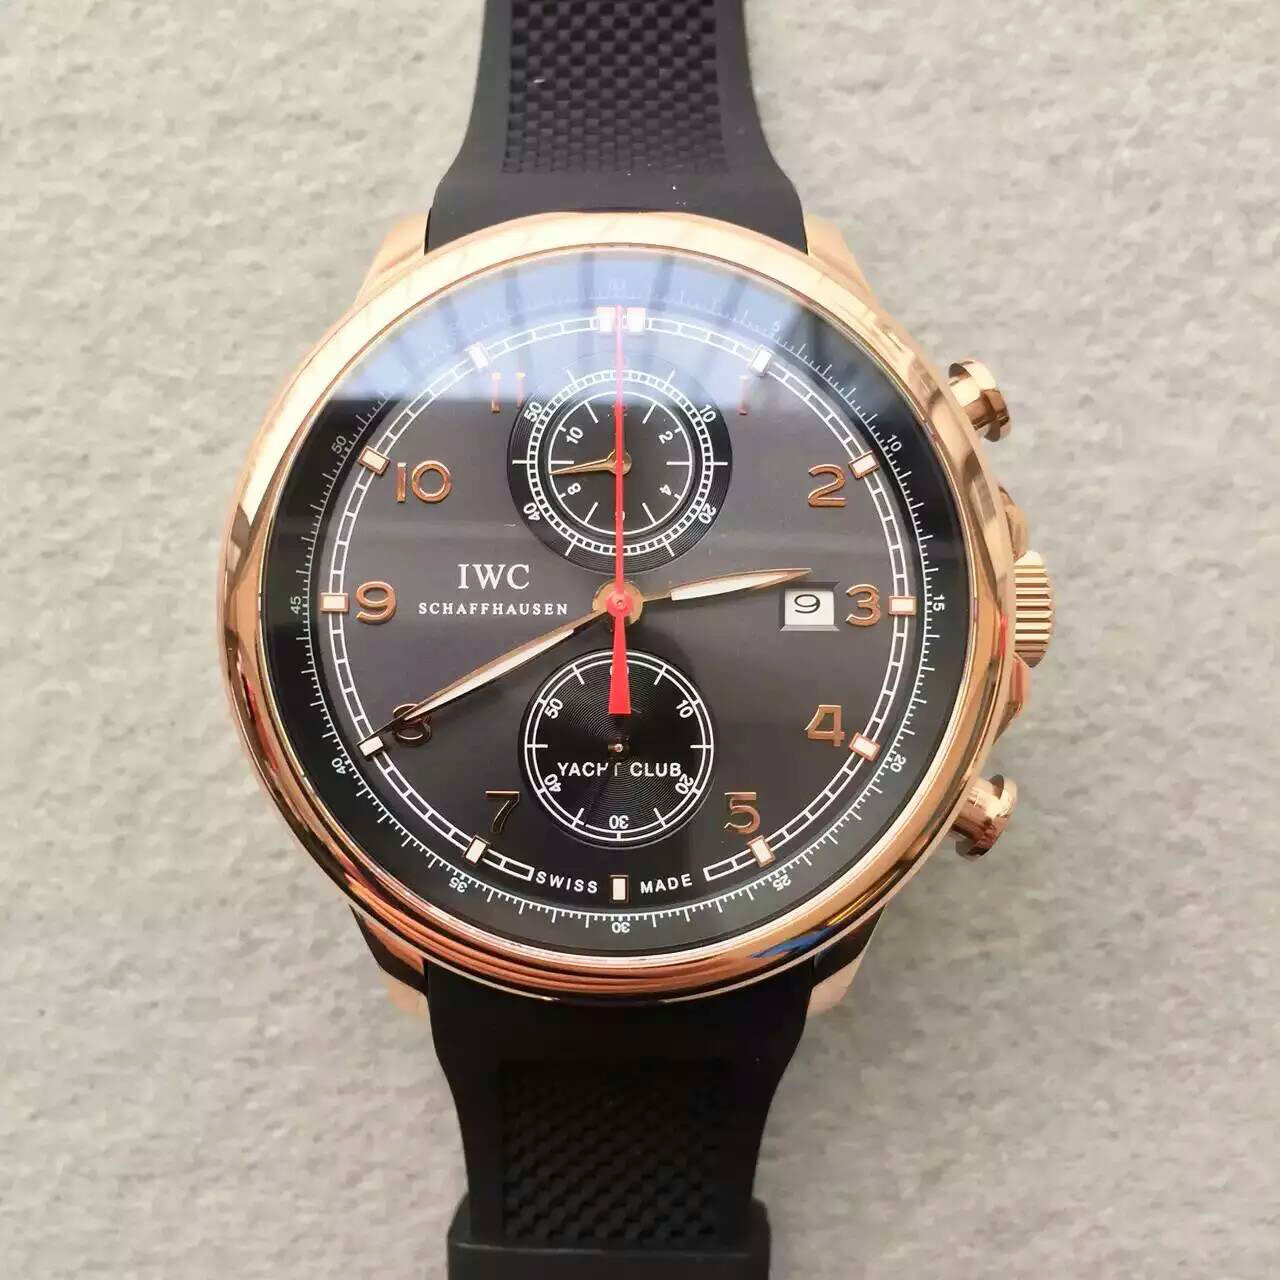 "萬國 IWC 全新葡萄牙YACHT CLUB CHRONOGRAPH航海精英計時腕錶""海洋勇士""特別版"